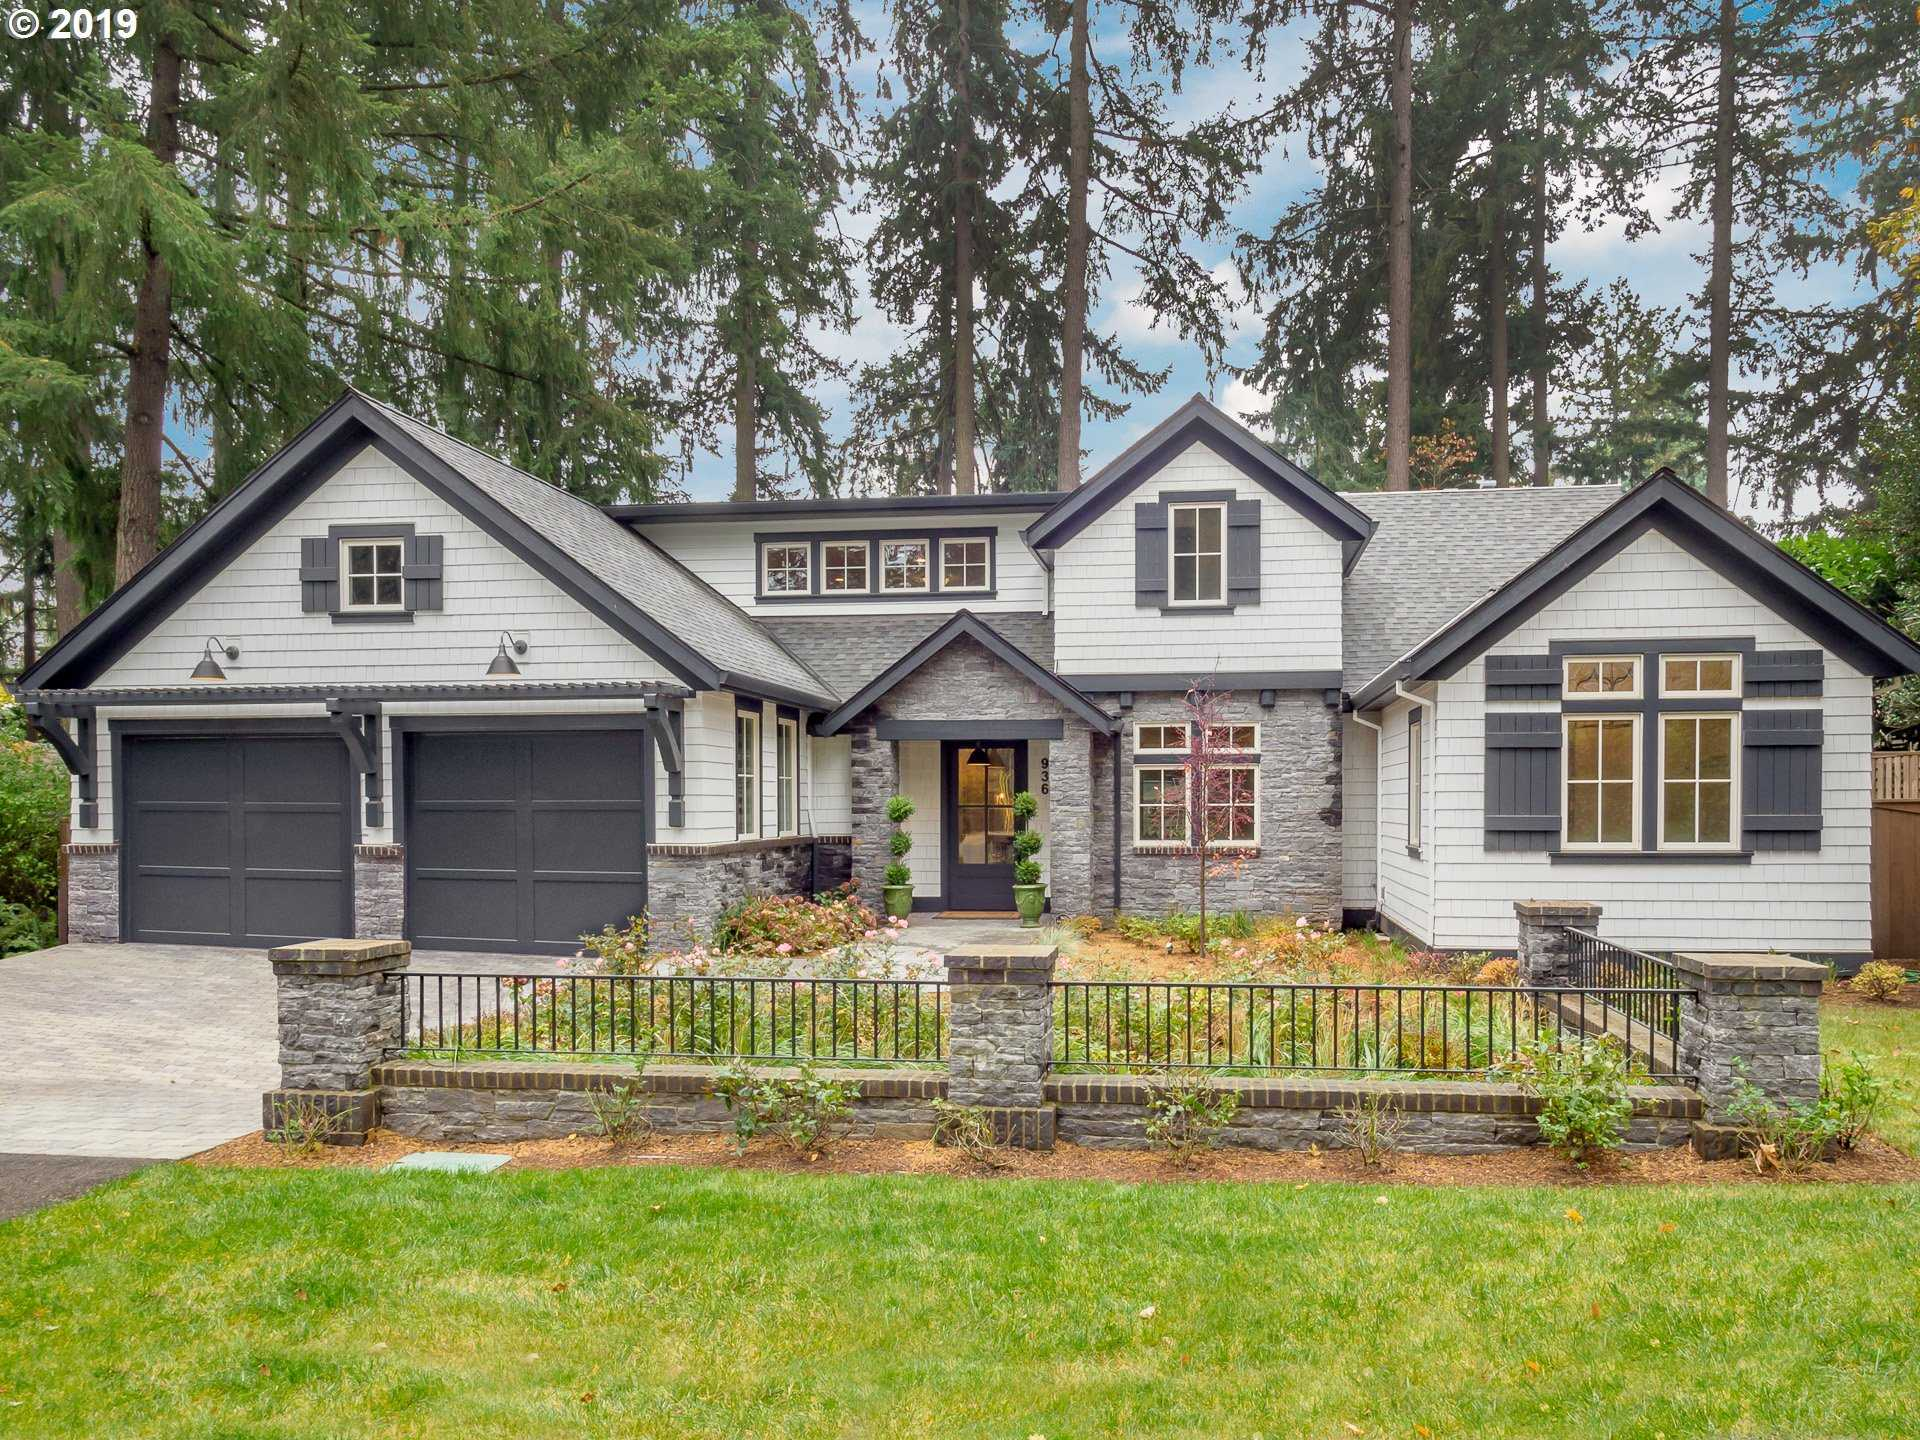 $2,195,000 - 4Br/4Ba -  for Sale in Evergreen Downtown Lake Oswego, Lake Oswego